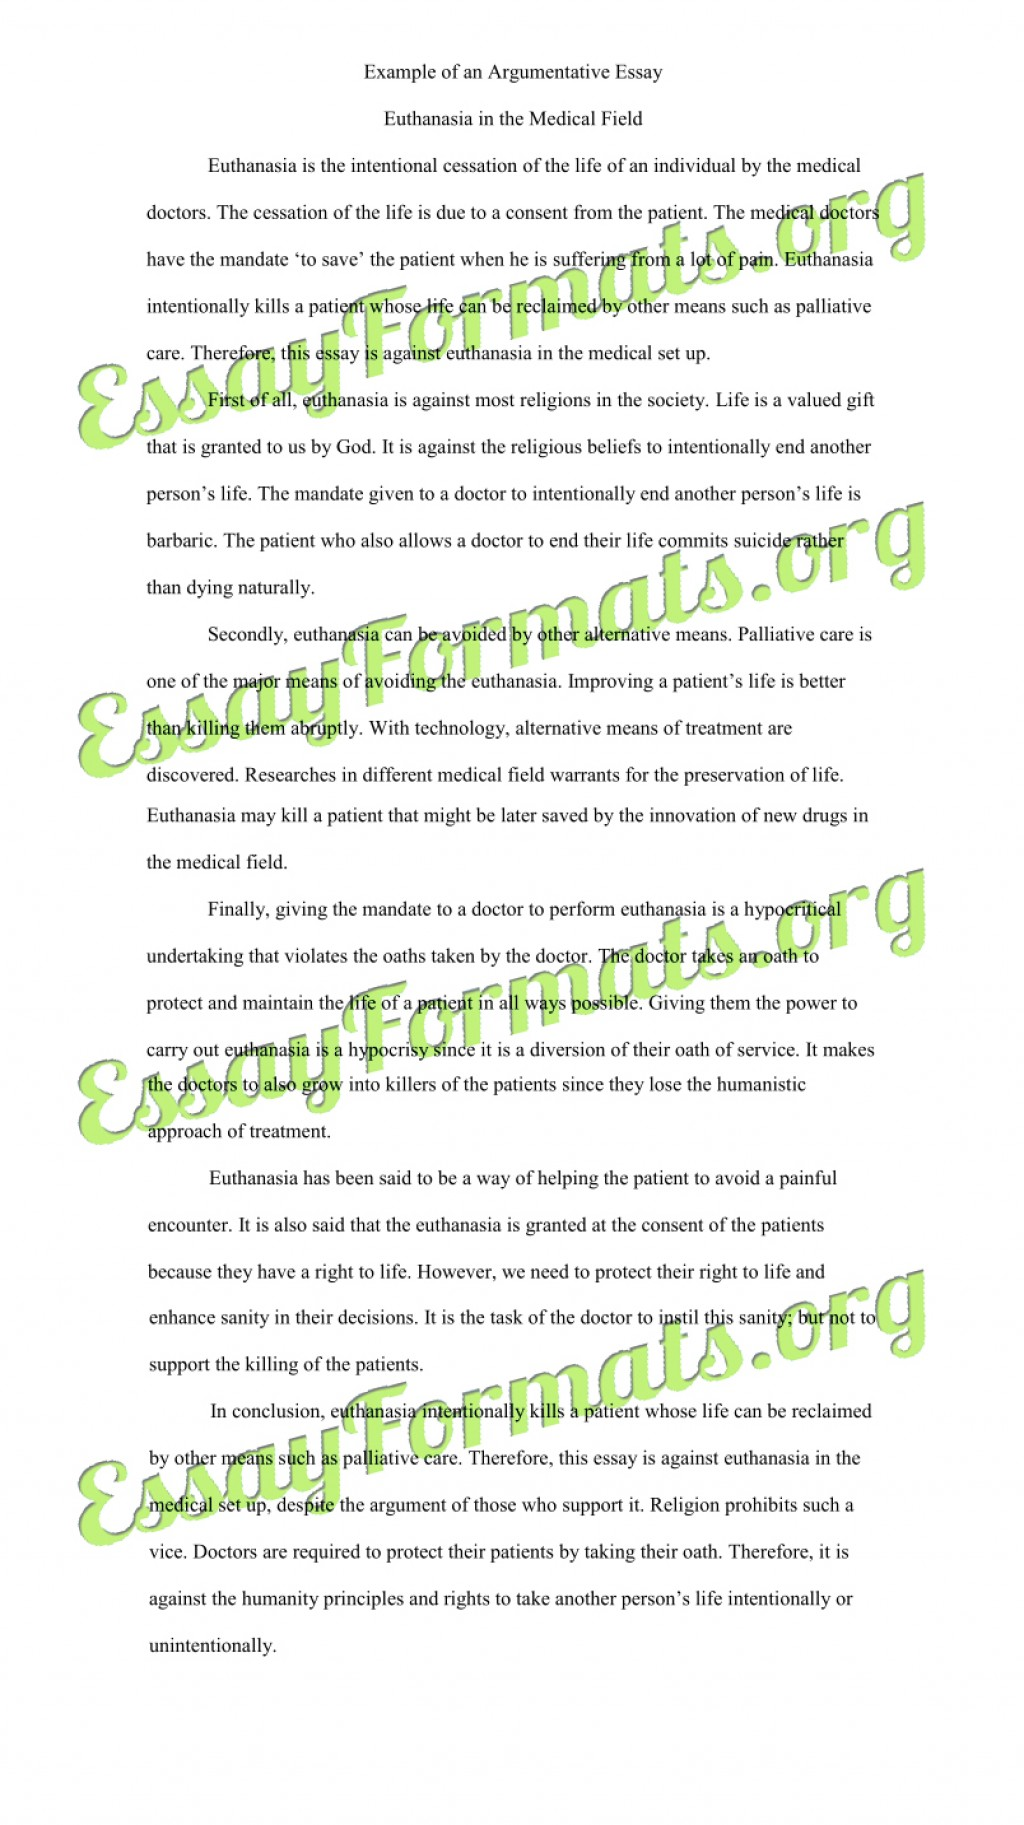 005 Essay Example Euthanasia Argumentative Counter Argument Persuasive Examples L Stirring Pro Thesis Introduction Large